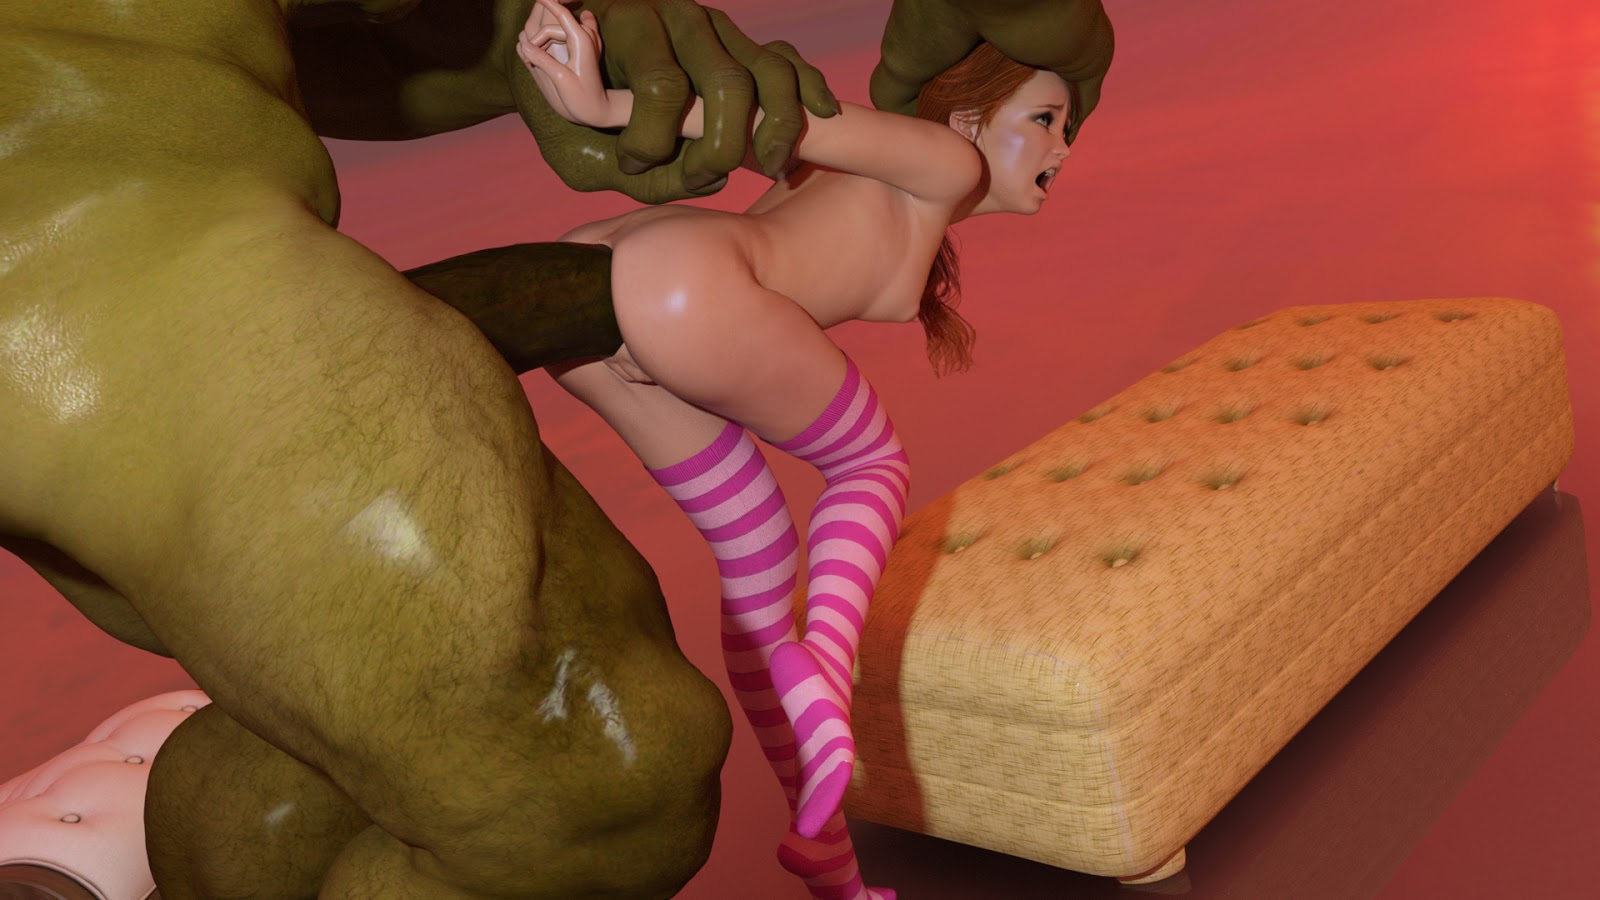 3d porn monster loads naked images